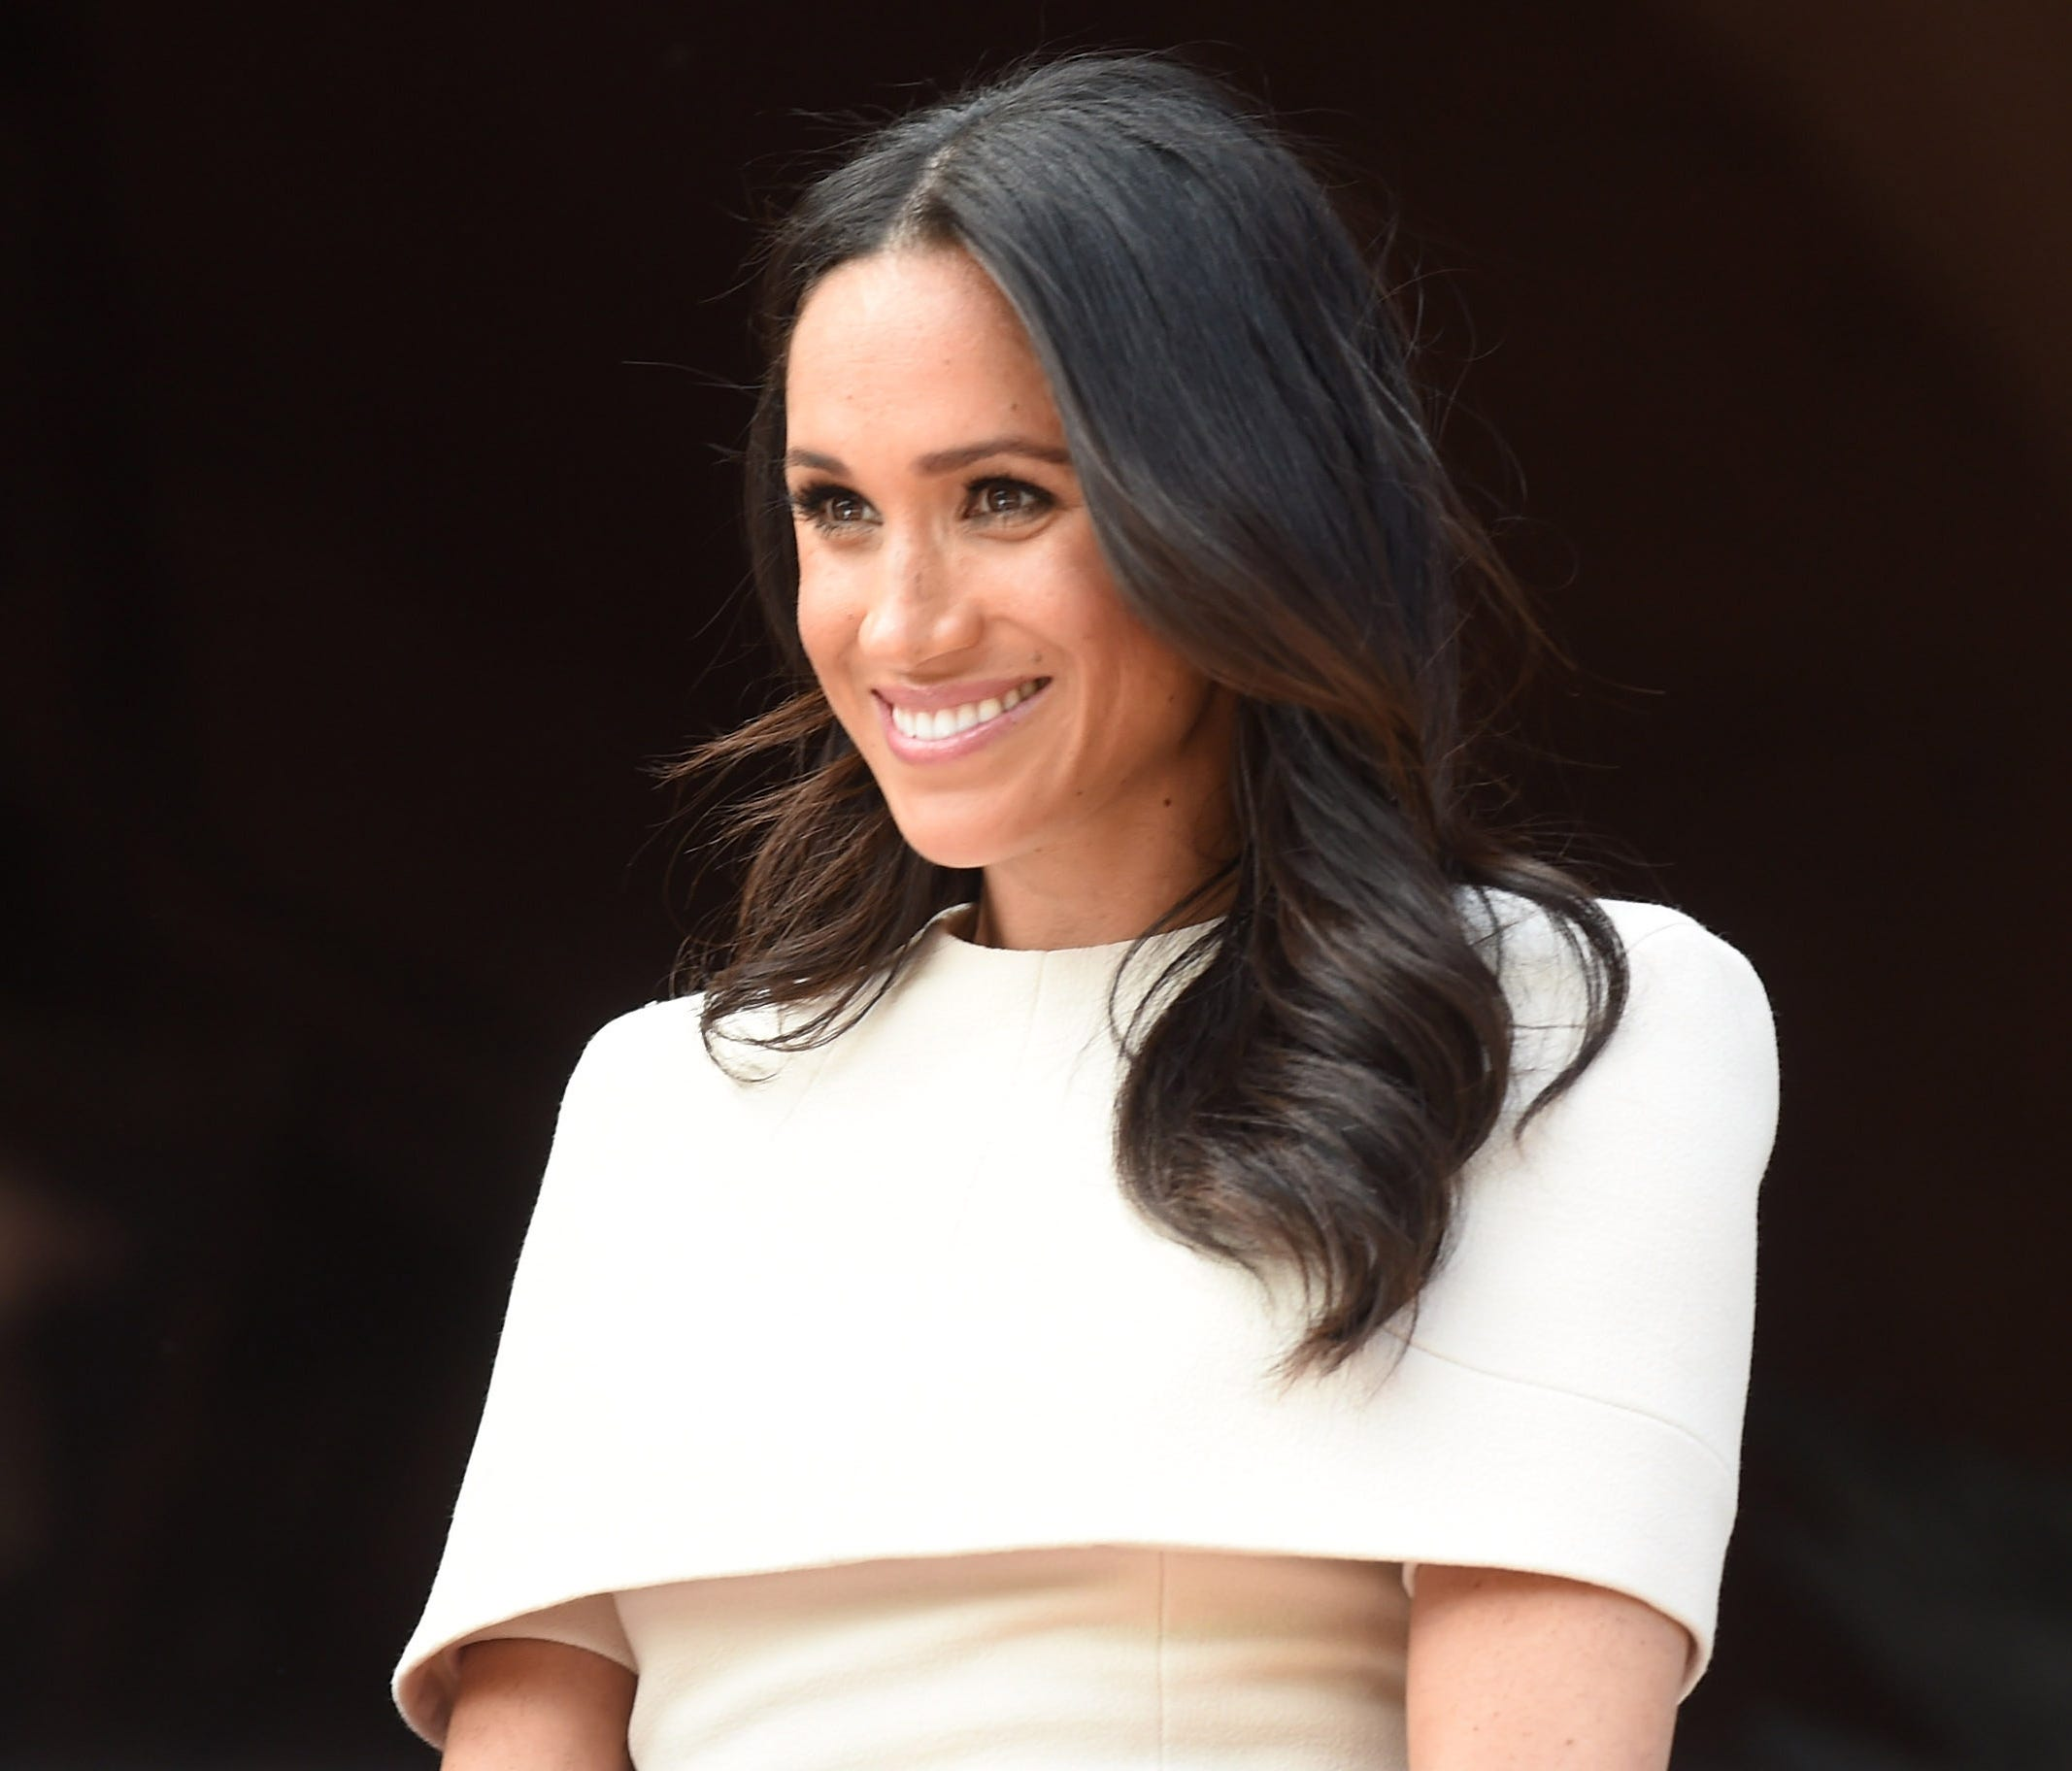 CHESTER, ENGLAND - JUNE 14:  Meghan, Duchess of Sussex and Queen Elizabeth II (not pictured) visit Chester Town Hall on June 14, 2018 in Chester, England. Meghan Markle married Prince Harry last month to become The Duchess of Sussex and this is her f